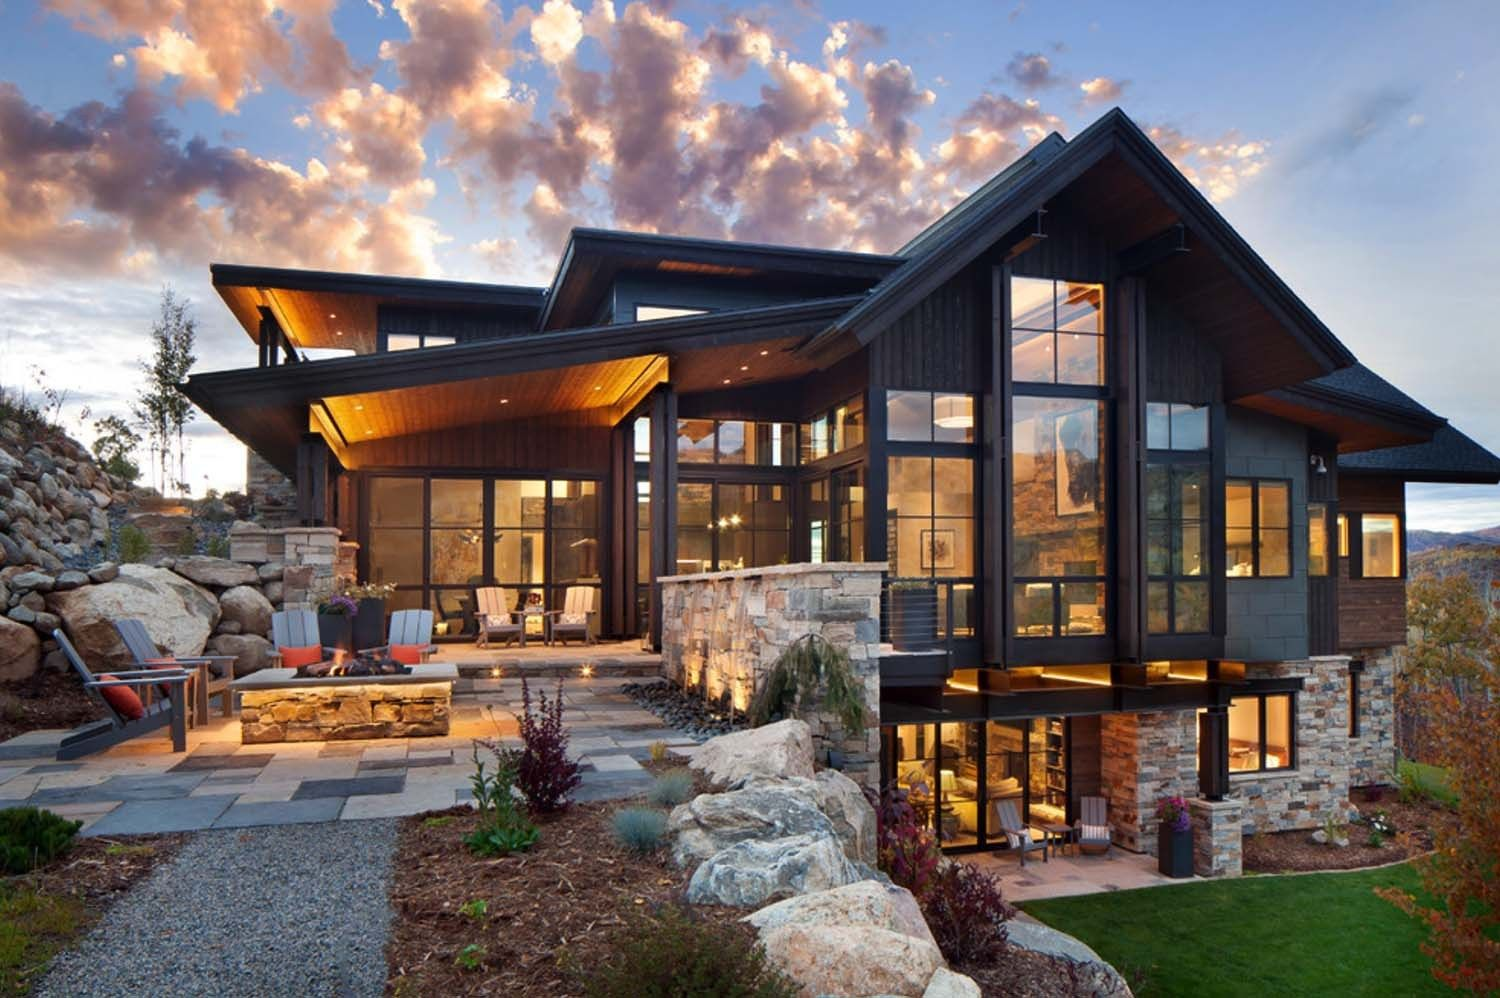 This Two Story Contemporary Mountain Home Was Designed In 2016 By Vertical Arts Architecture Located Steamboat Springs Colorado